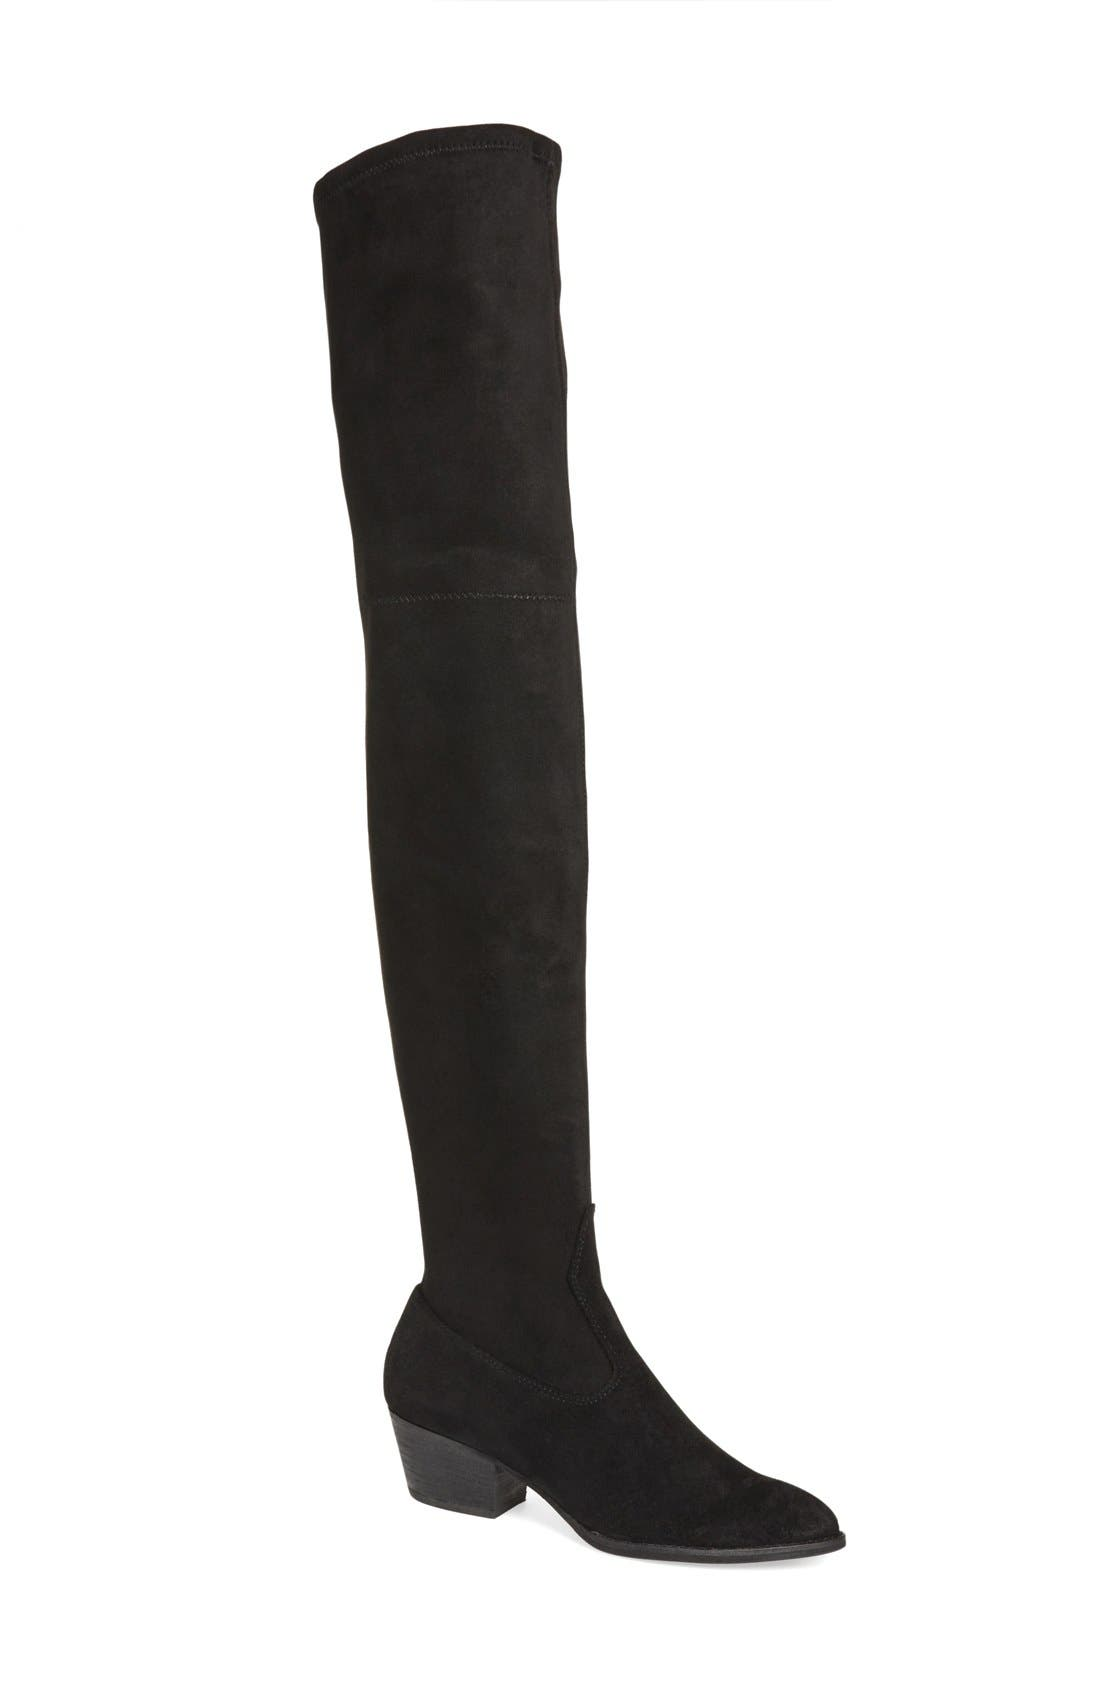 'Sparrow' Thigh High Almond Toe Boot,                         Main,                         color, 001